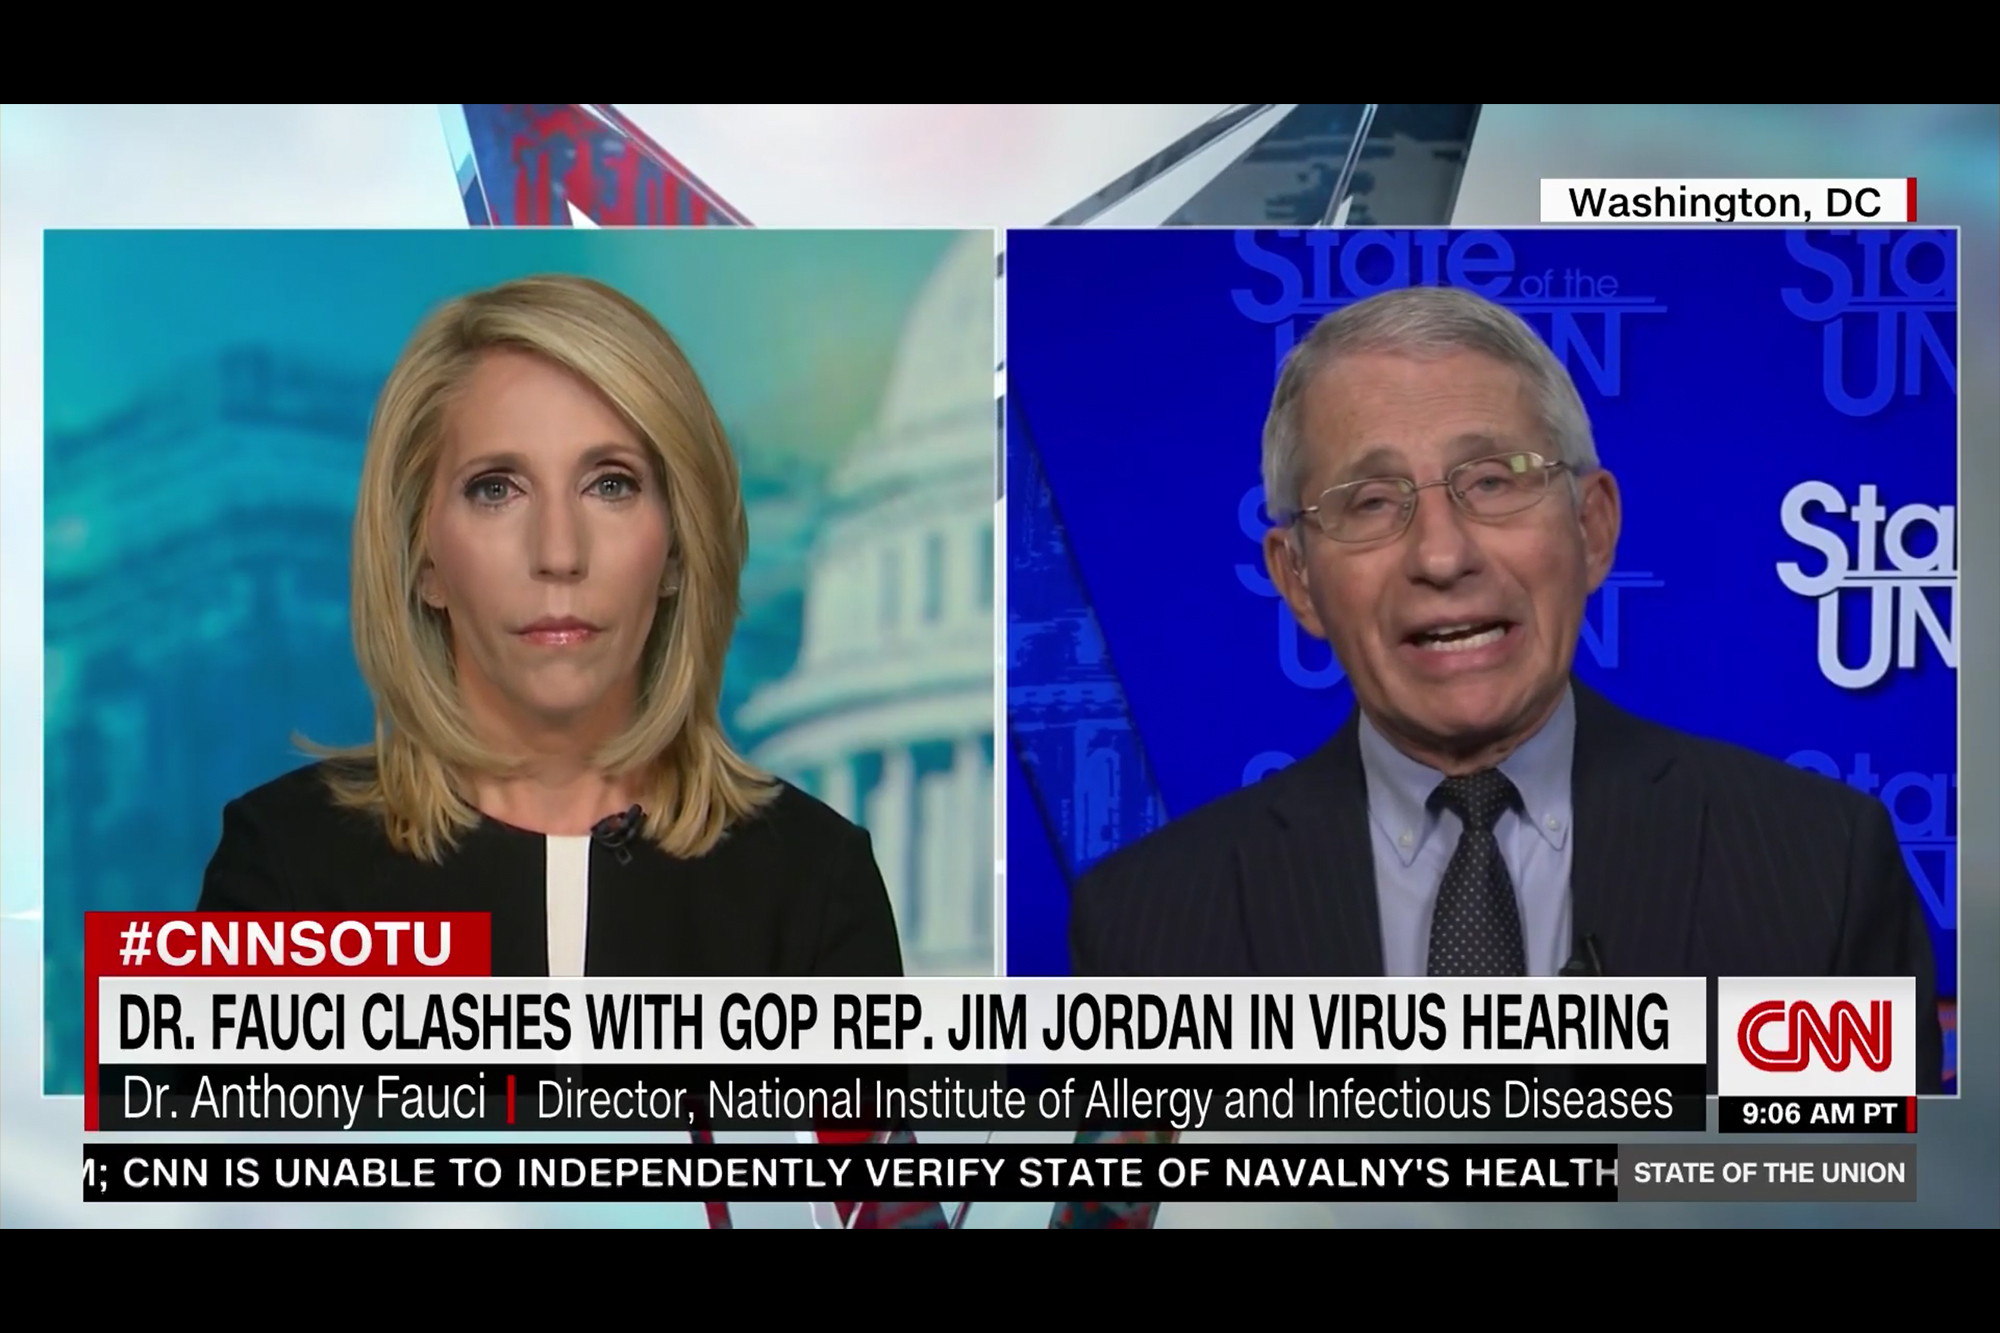 Fauci Responds to Attacks from Rep. Jordan and Republican Vaccine Hesitancy